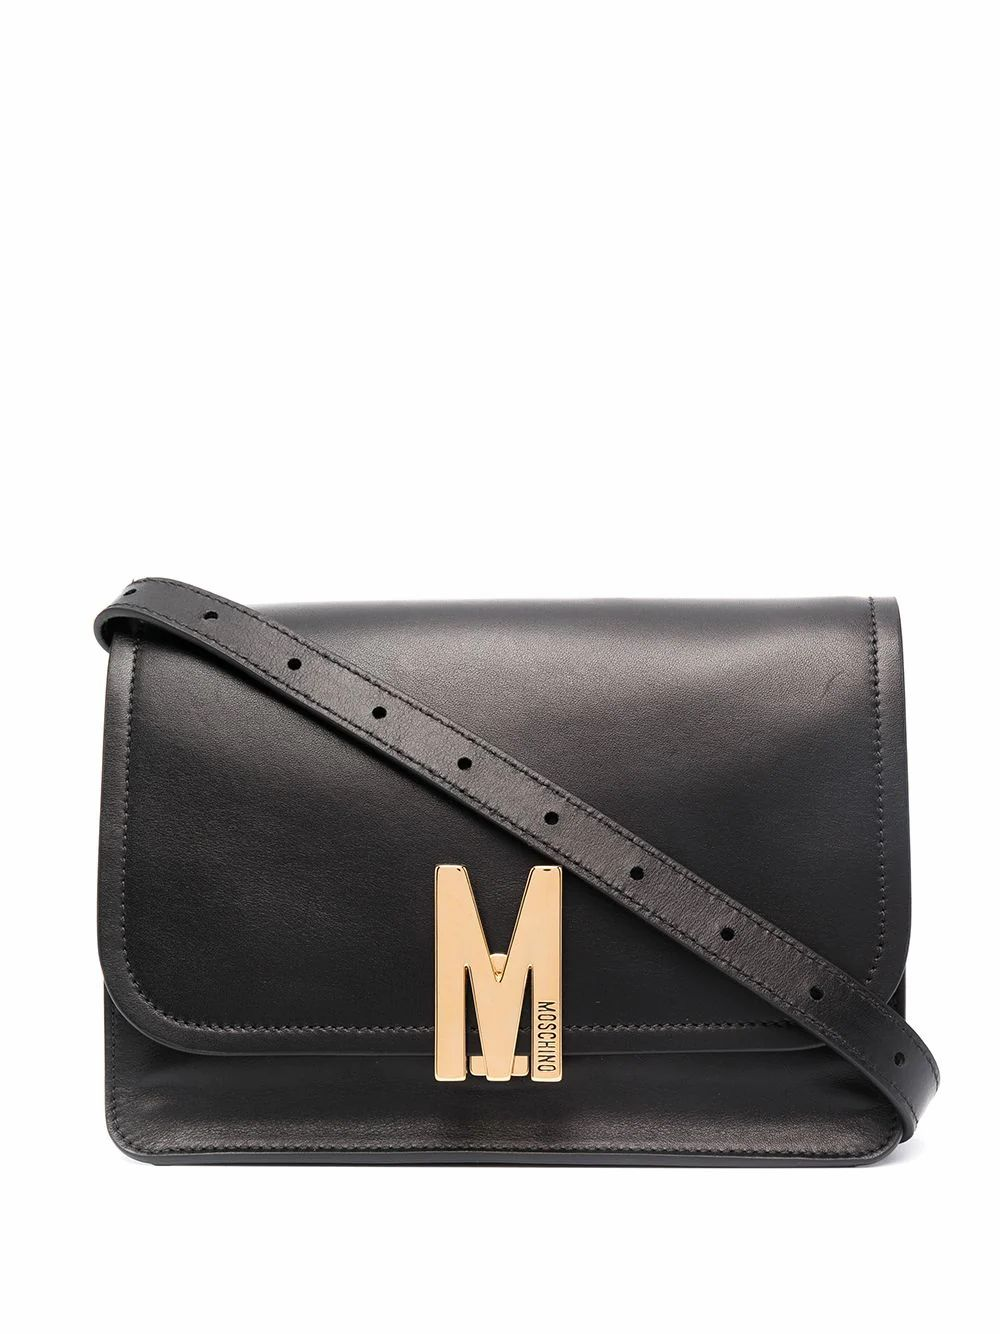 Moschino Leathers MOSCHINO WOMEN'S 749380080555 BLACK LEATHER SHOULDER BAG